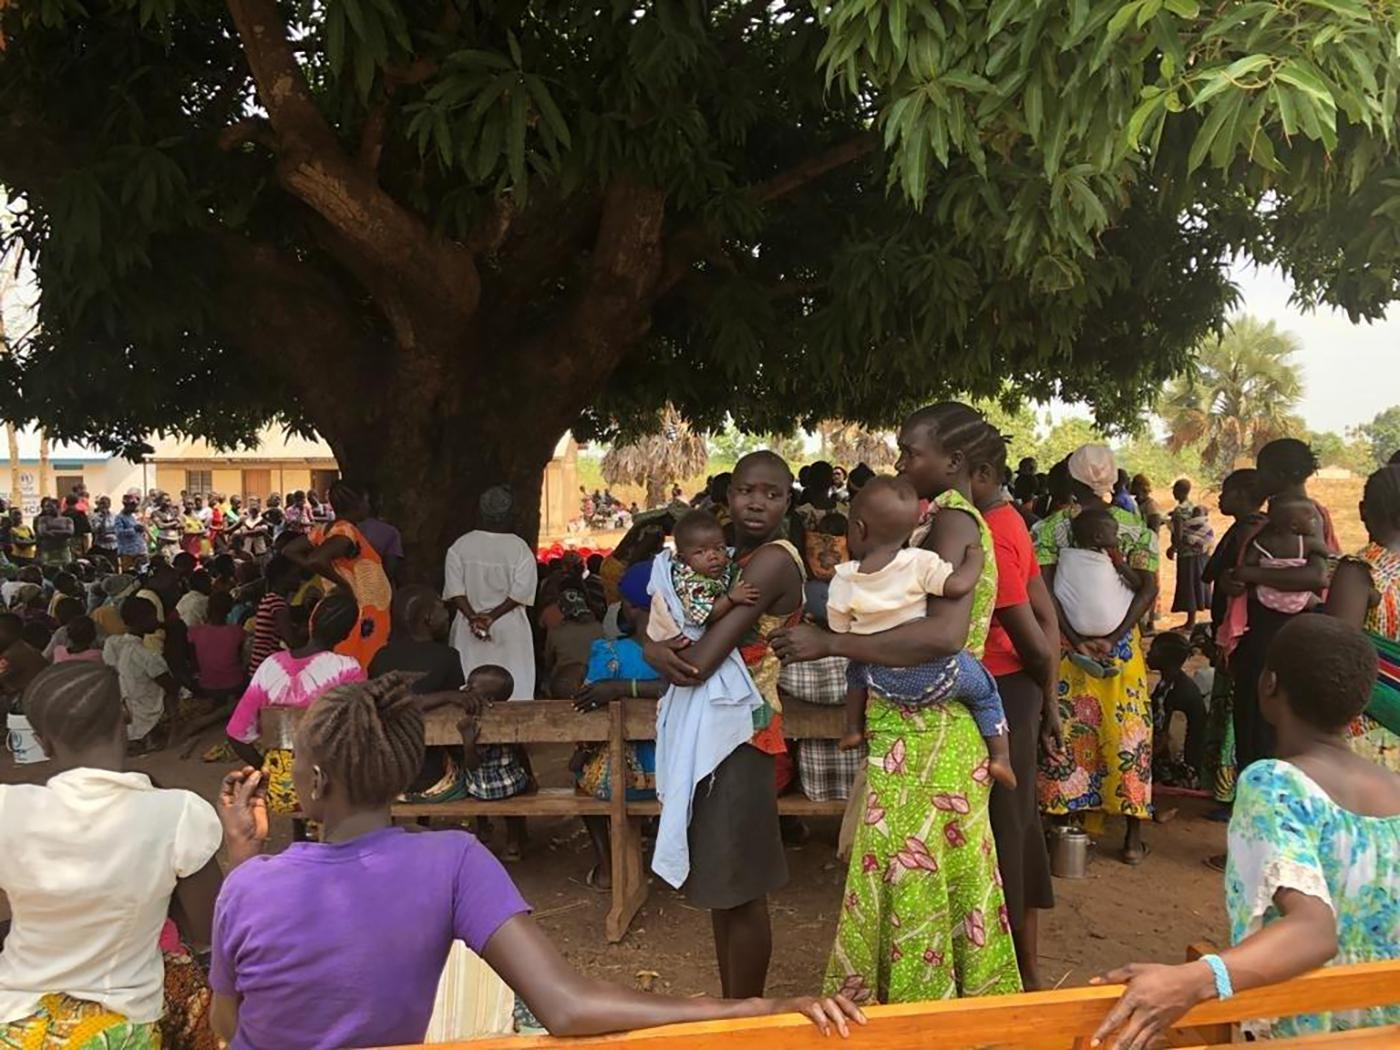 Displaced civilians holding a meeting under a tree in Yei, South Sudan, March 2019.Photo Nyagoah Tut Put/Human Rights Watch